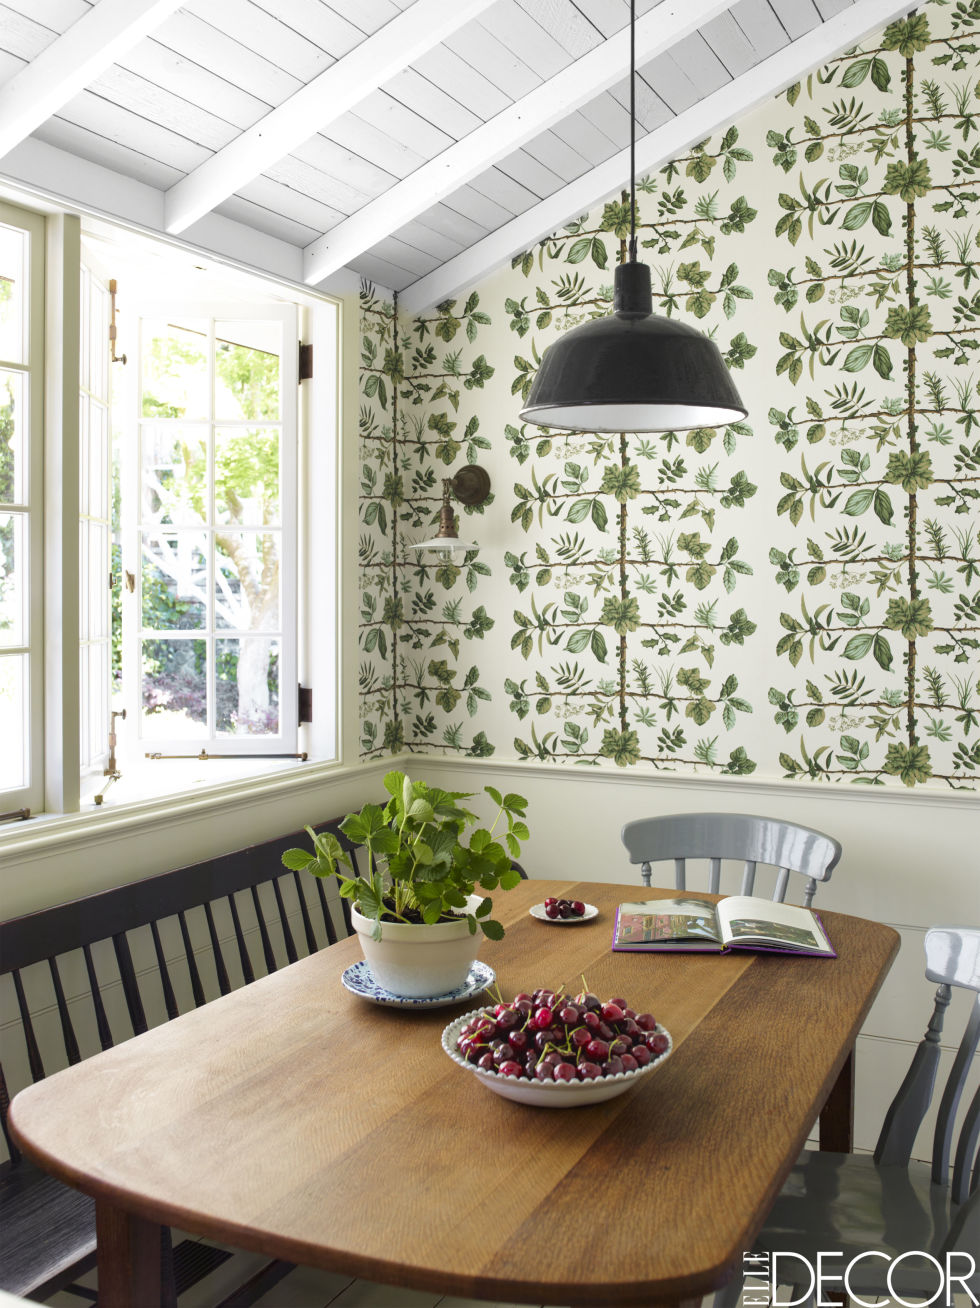 Traditional elements like the farmhouse chairs and botanical wallpaper from iconic French home furnishings company  Pierre Frey keep the breakfast nook homely. High-gloss paint and an industrial light pendent keep it looking youthful.